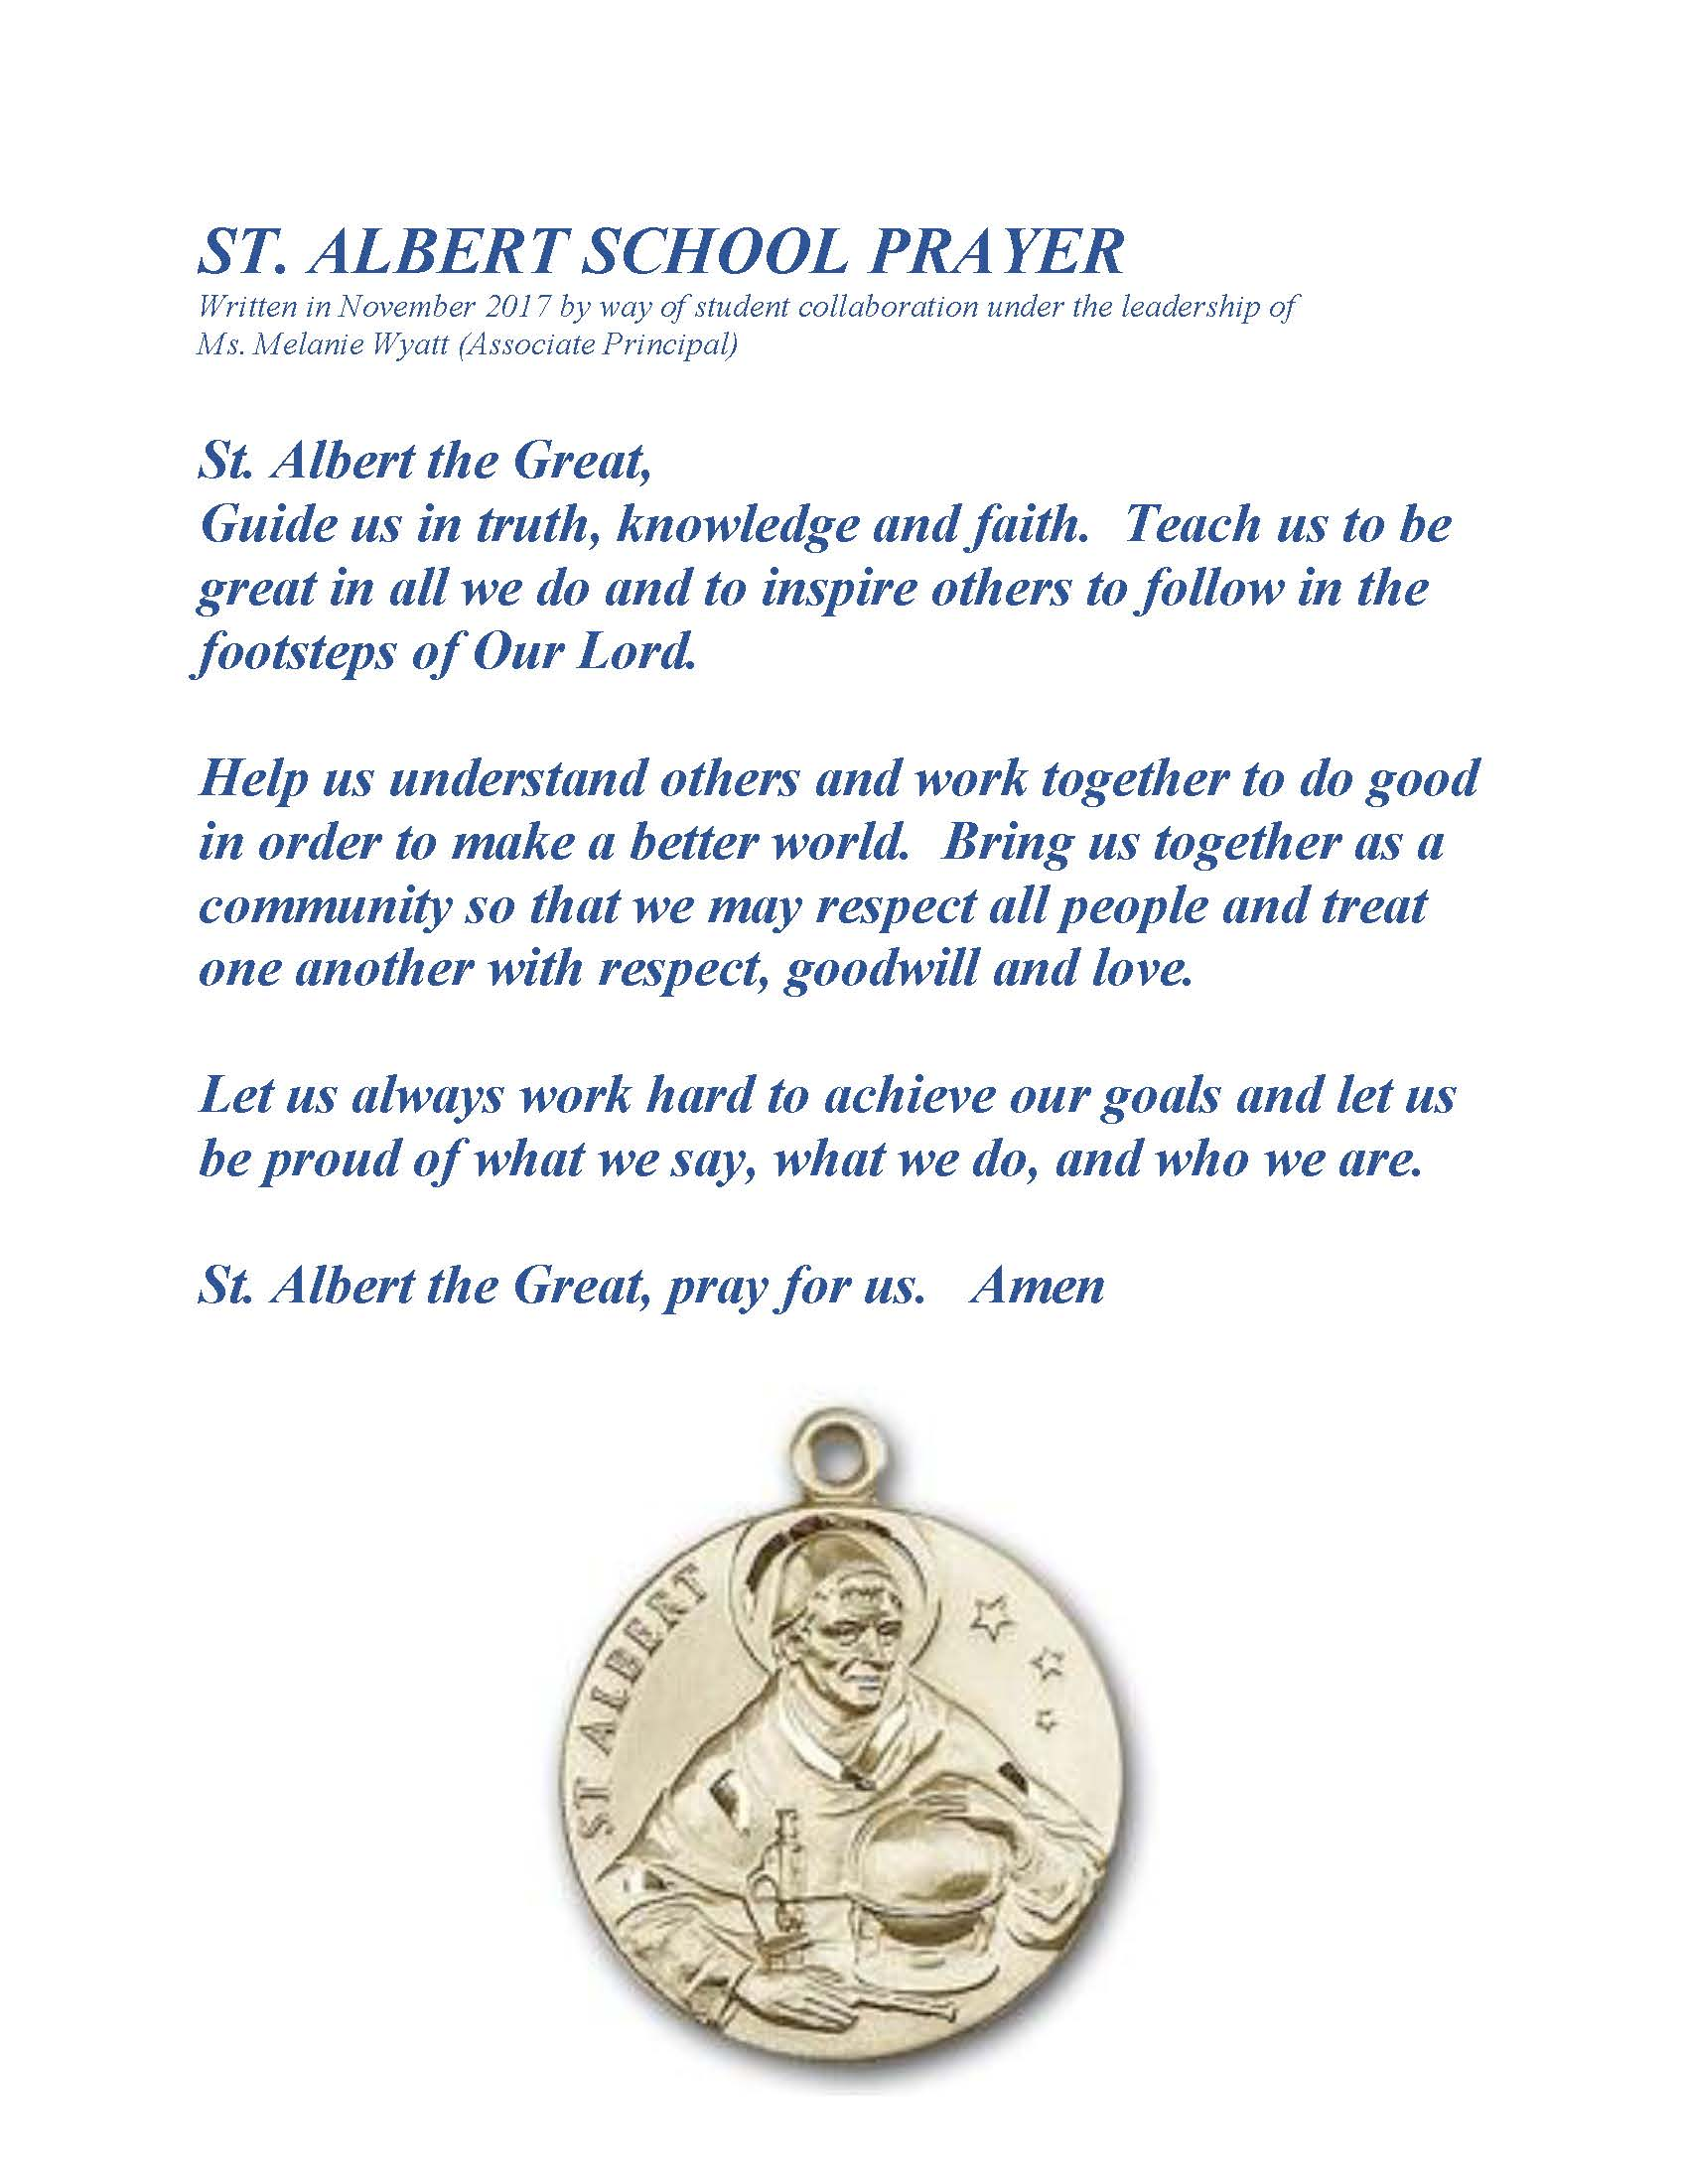 St. Albert School Prayer.jpg